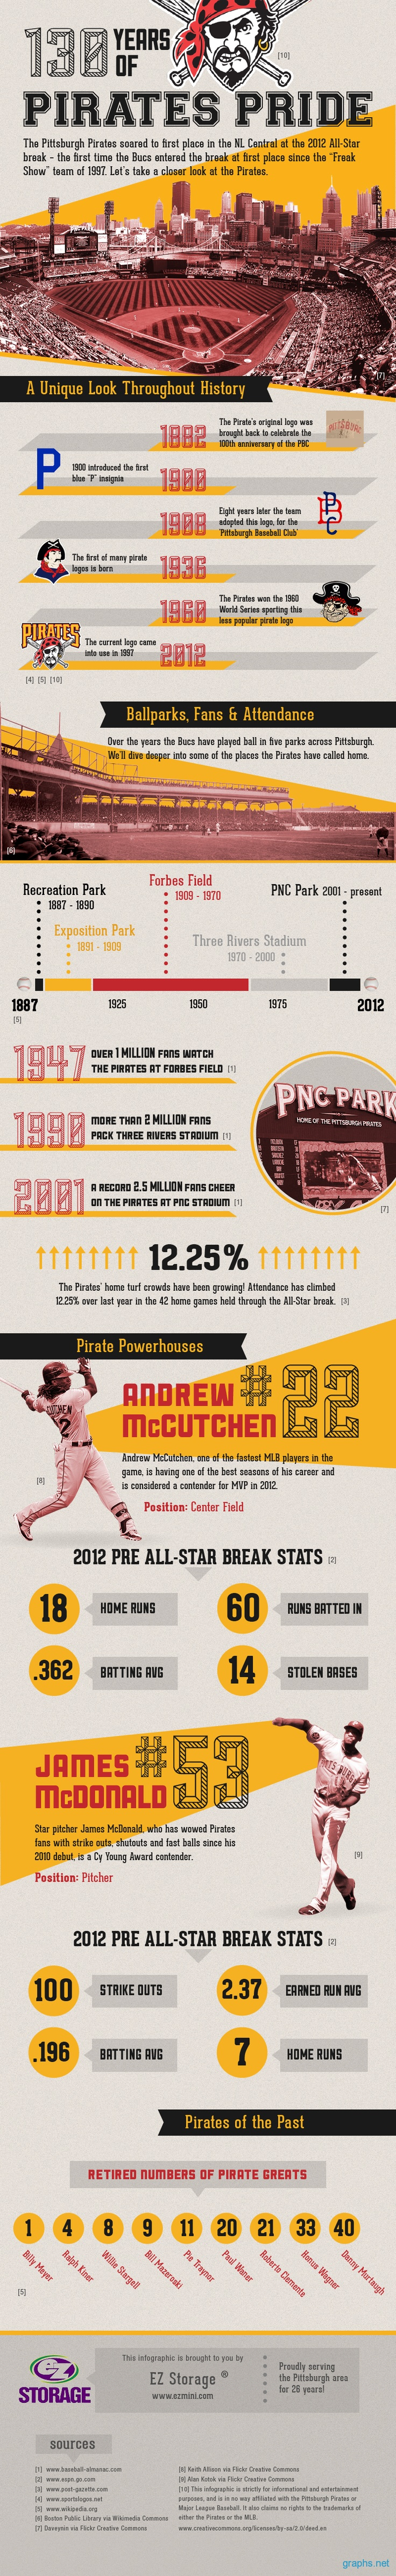 History of Pirates Pride sports pirates